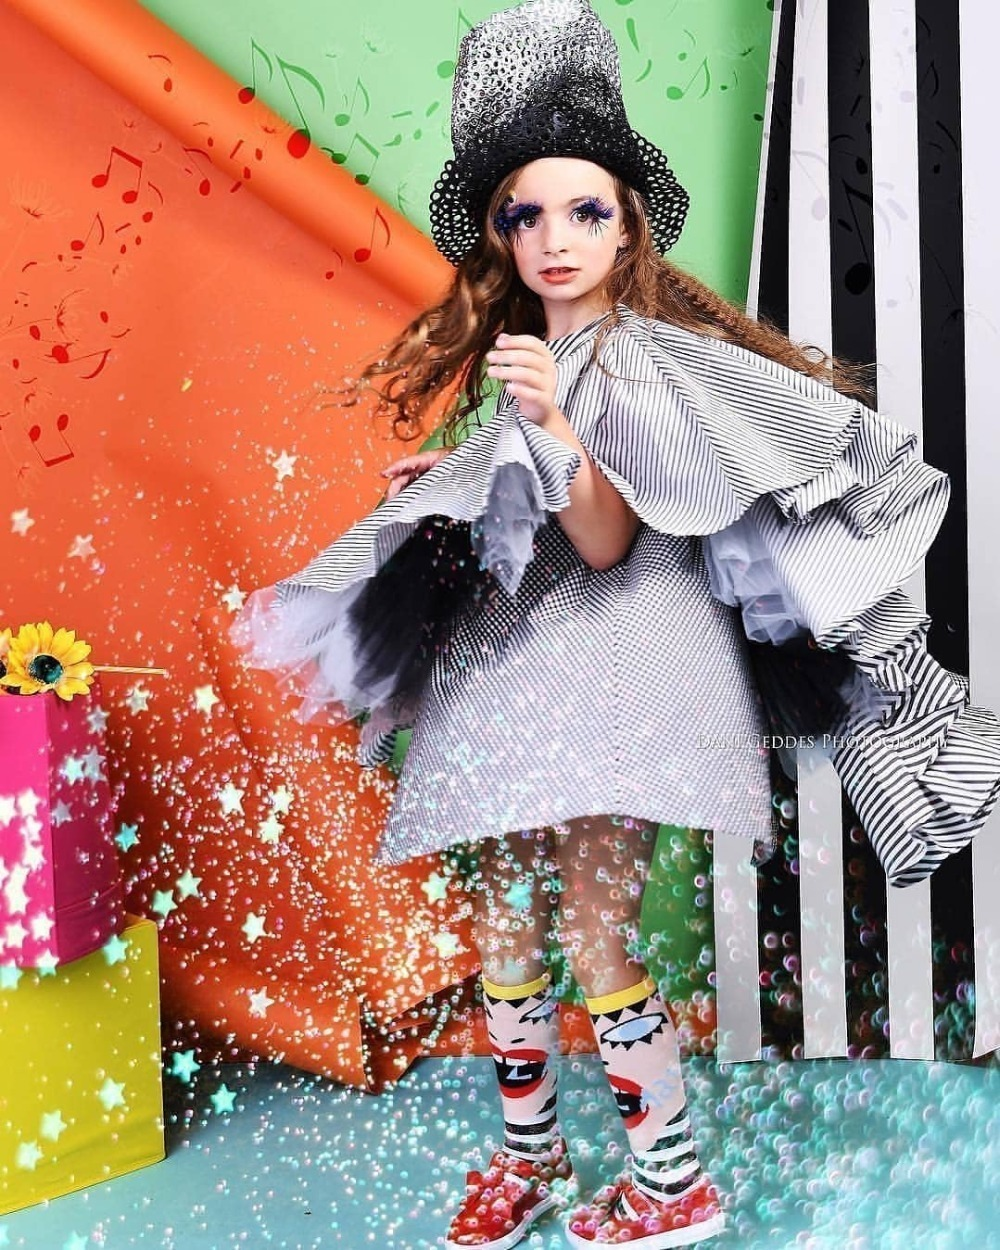 BOBO-CHOSES-Kids-Girls-Baby-Tights-Stockings-Eye-Pattern-Baby-Girl-Tights-Tiny-Cottons-Cute-Children (2)